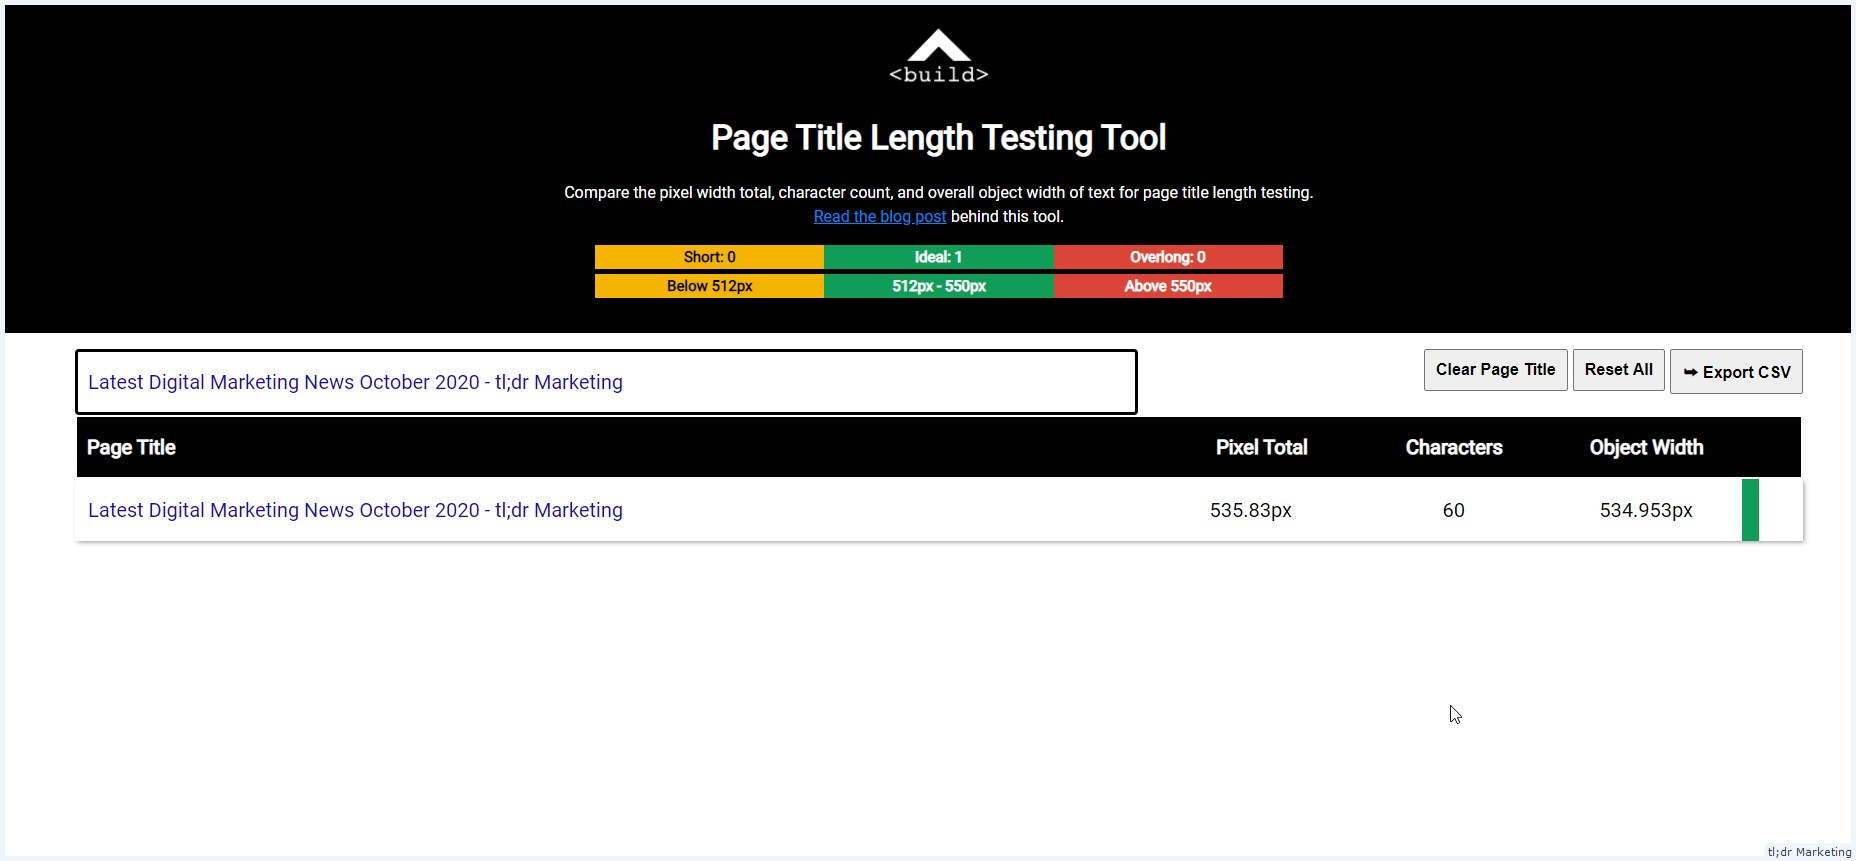 Page Title Length Testing Tool That Looks At Object Width